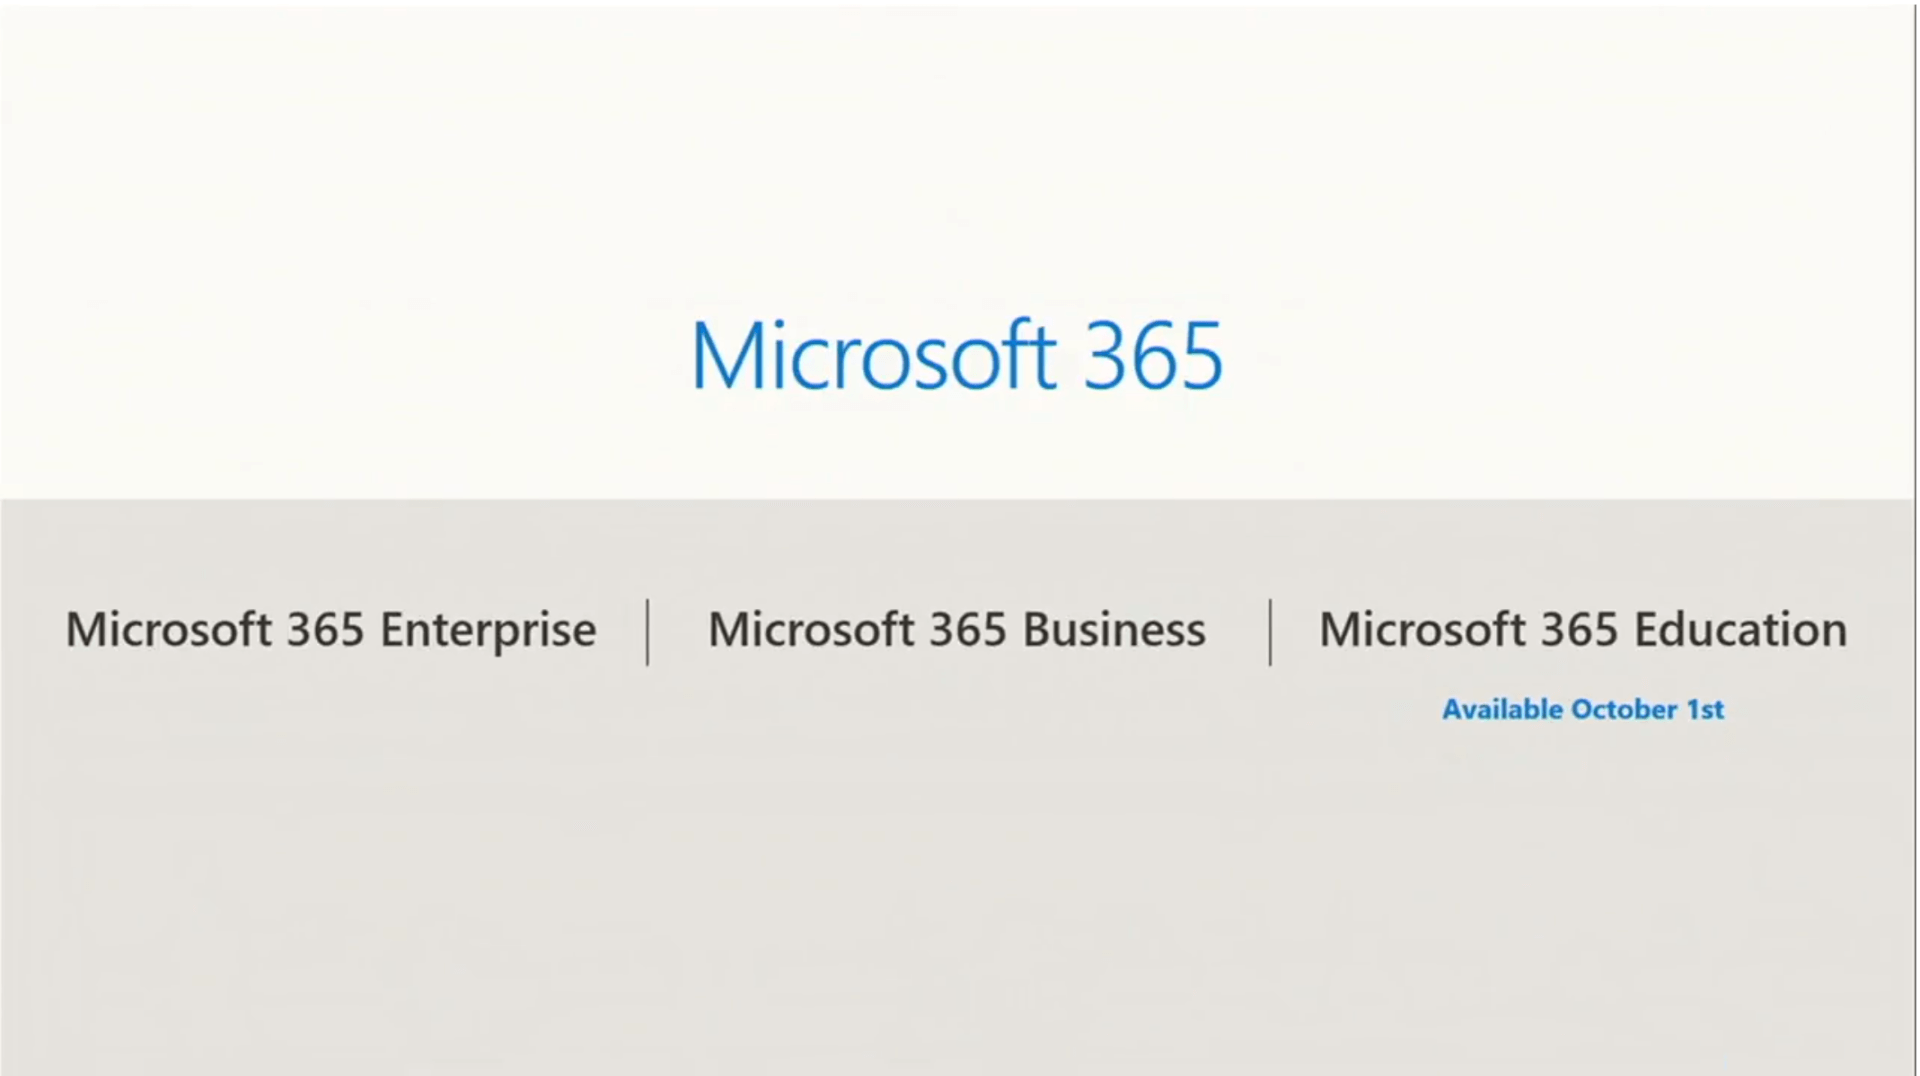 Texte de remplacement généré par une machine : Microsoft 365 Enterprise Microsoft 365 Microsoft 365 Business Microsoft 365 Education Available October Ist